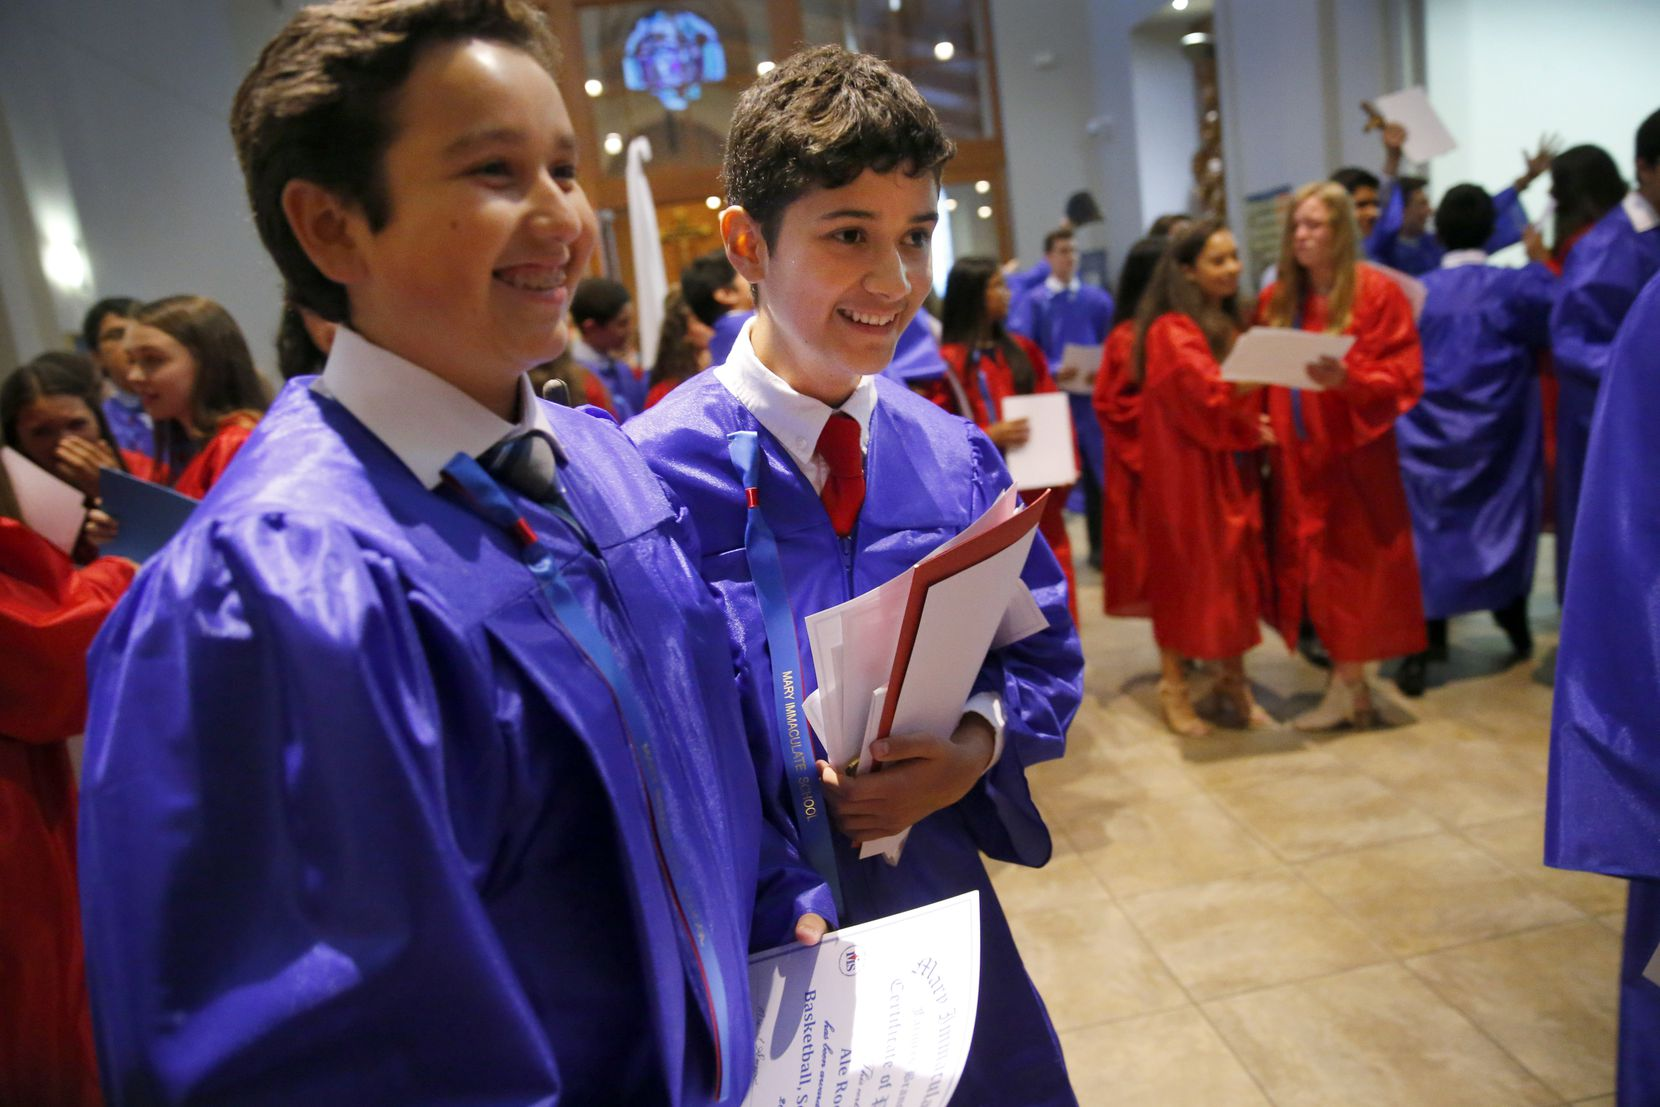 Zach (center) was all smiles as he and his classmates wrapped up their graduation last month at Mary Immaculate Catholic Church in Farmers Branch.